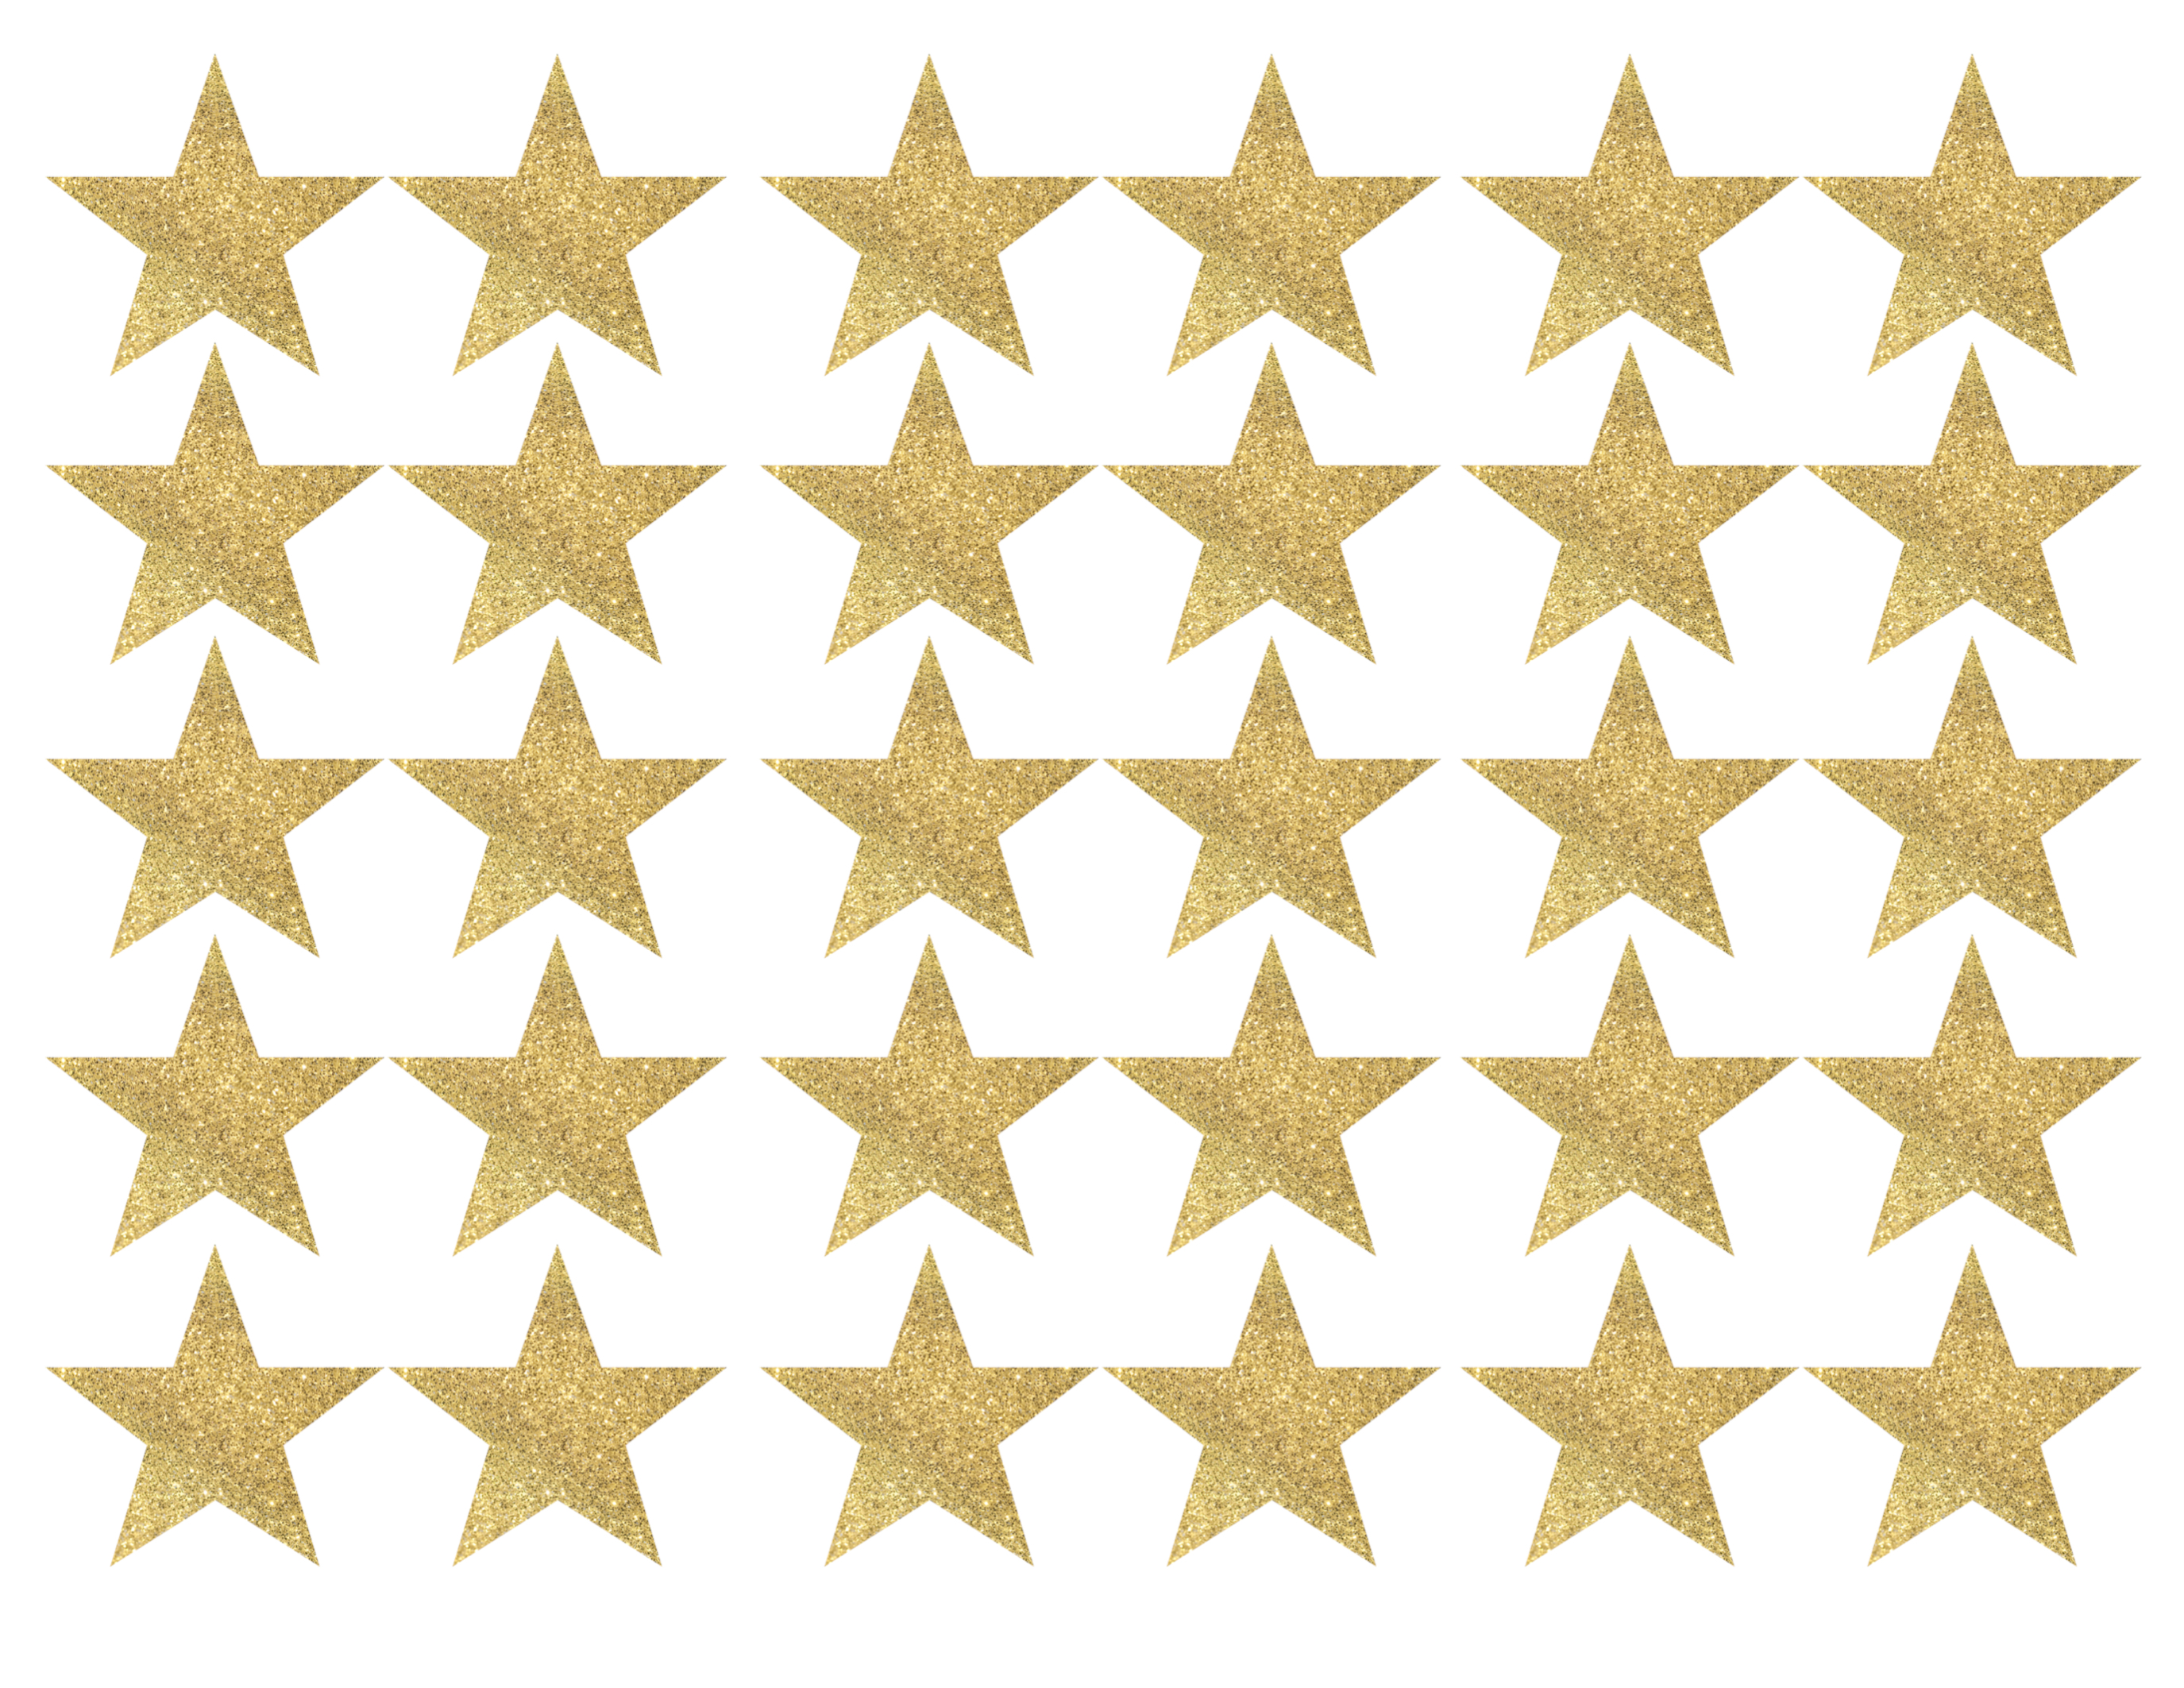 graphic relating to Stars Printable referred to as Gold Star Banner Xmas Garland Printable - Paper Path